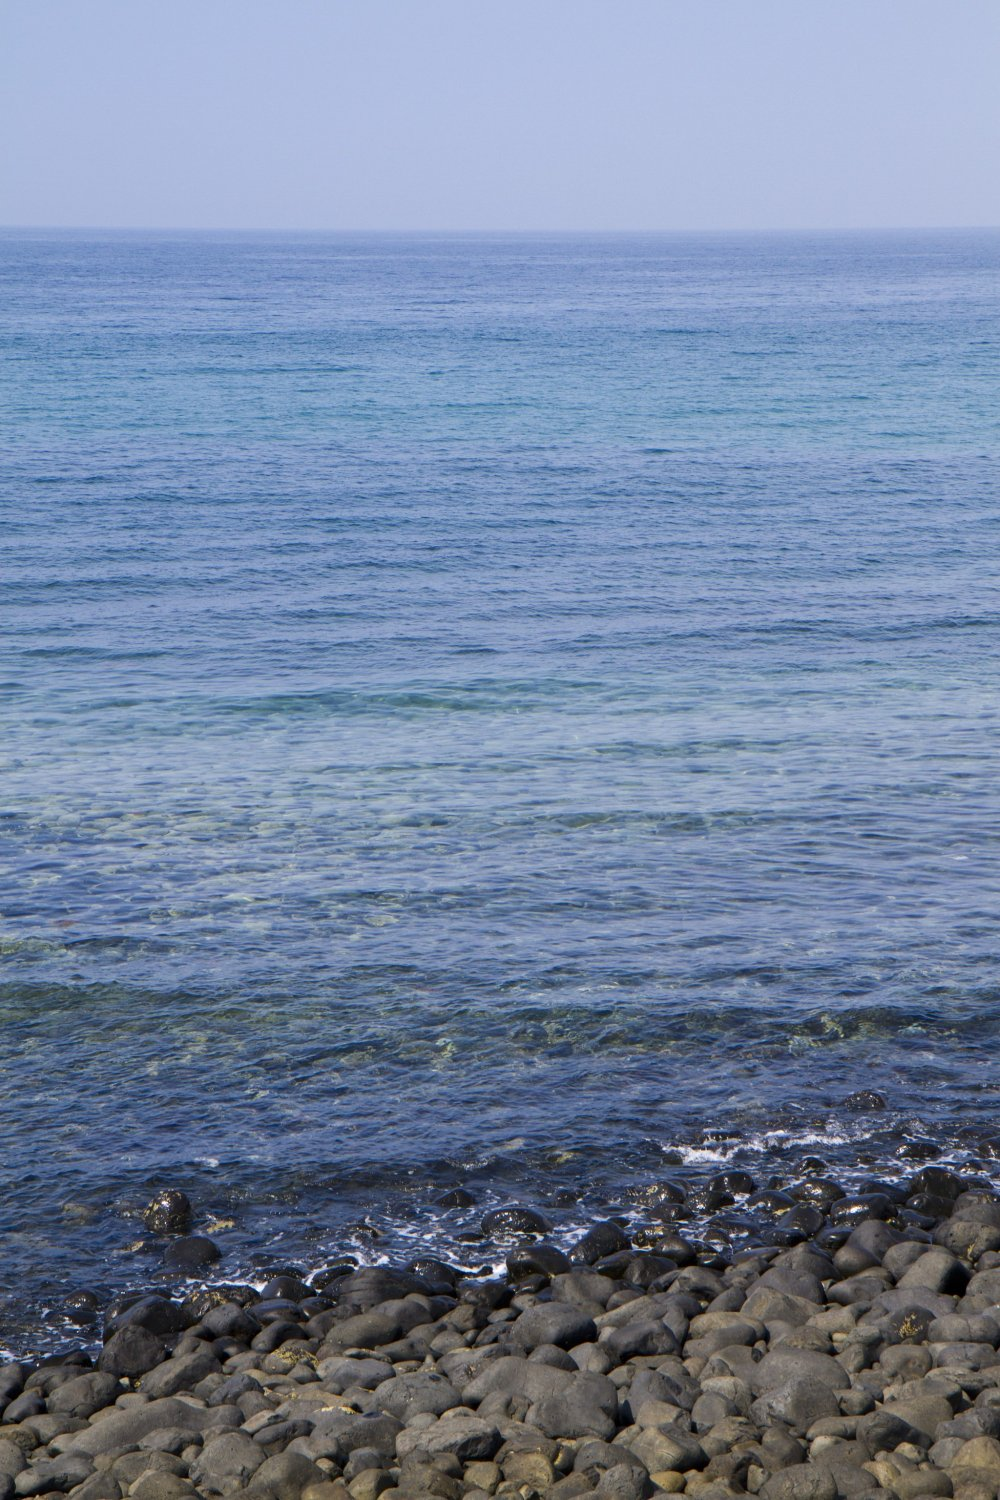 Many shades of blue in the Genkai-Nada Sea to ponder